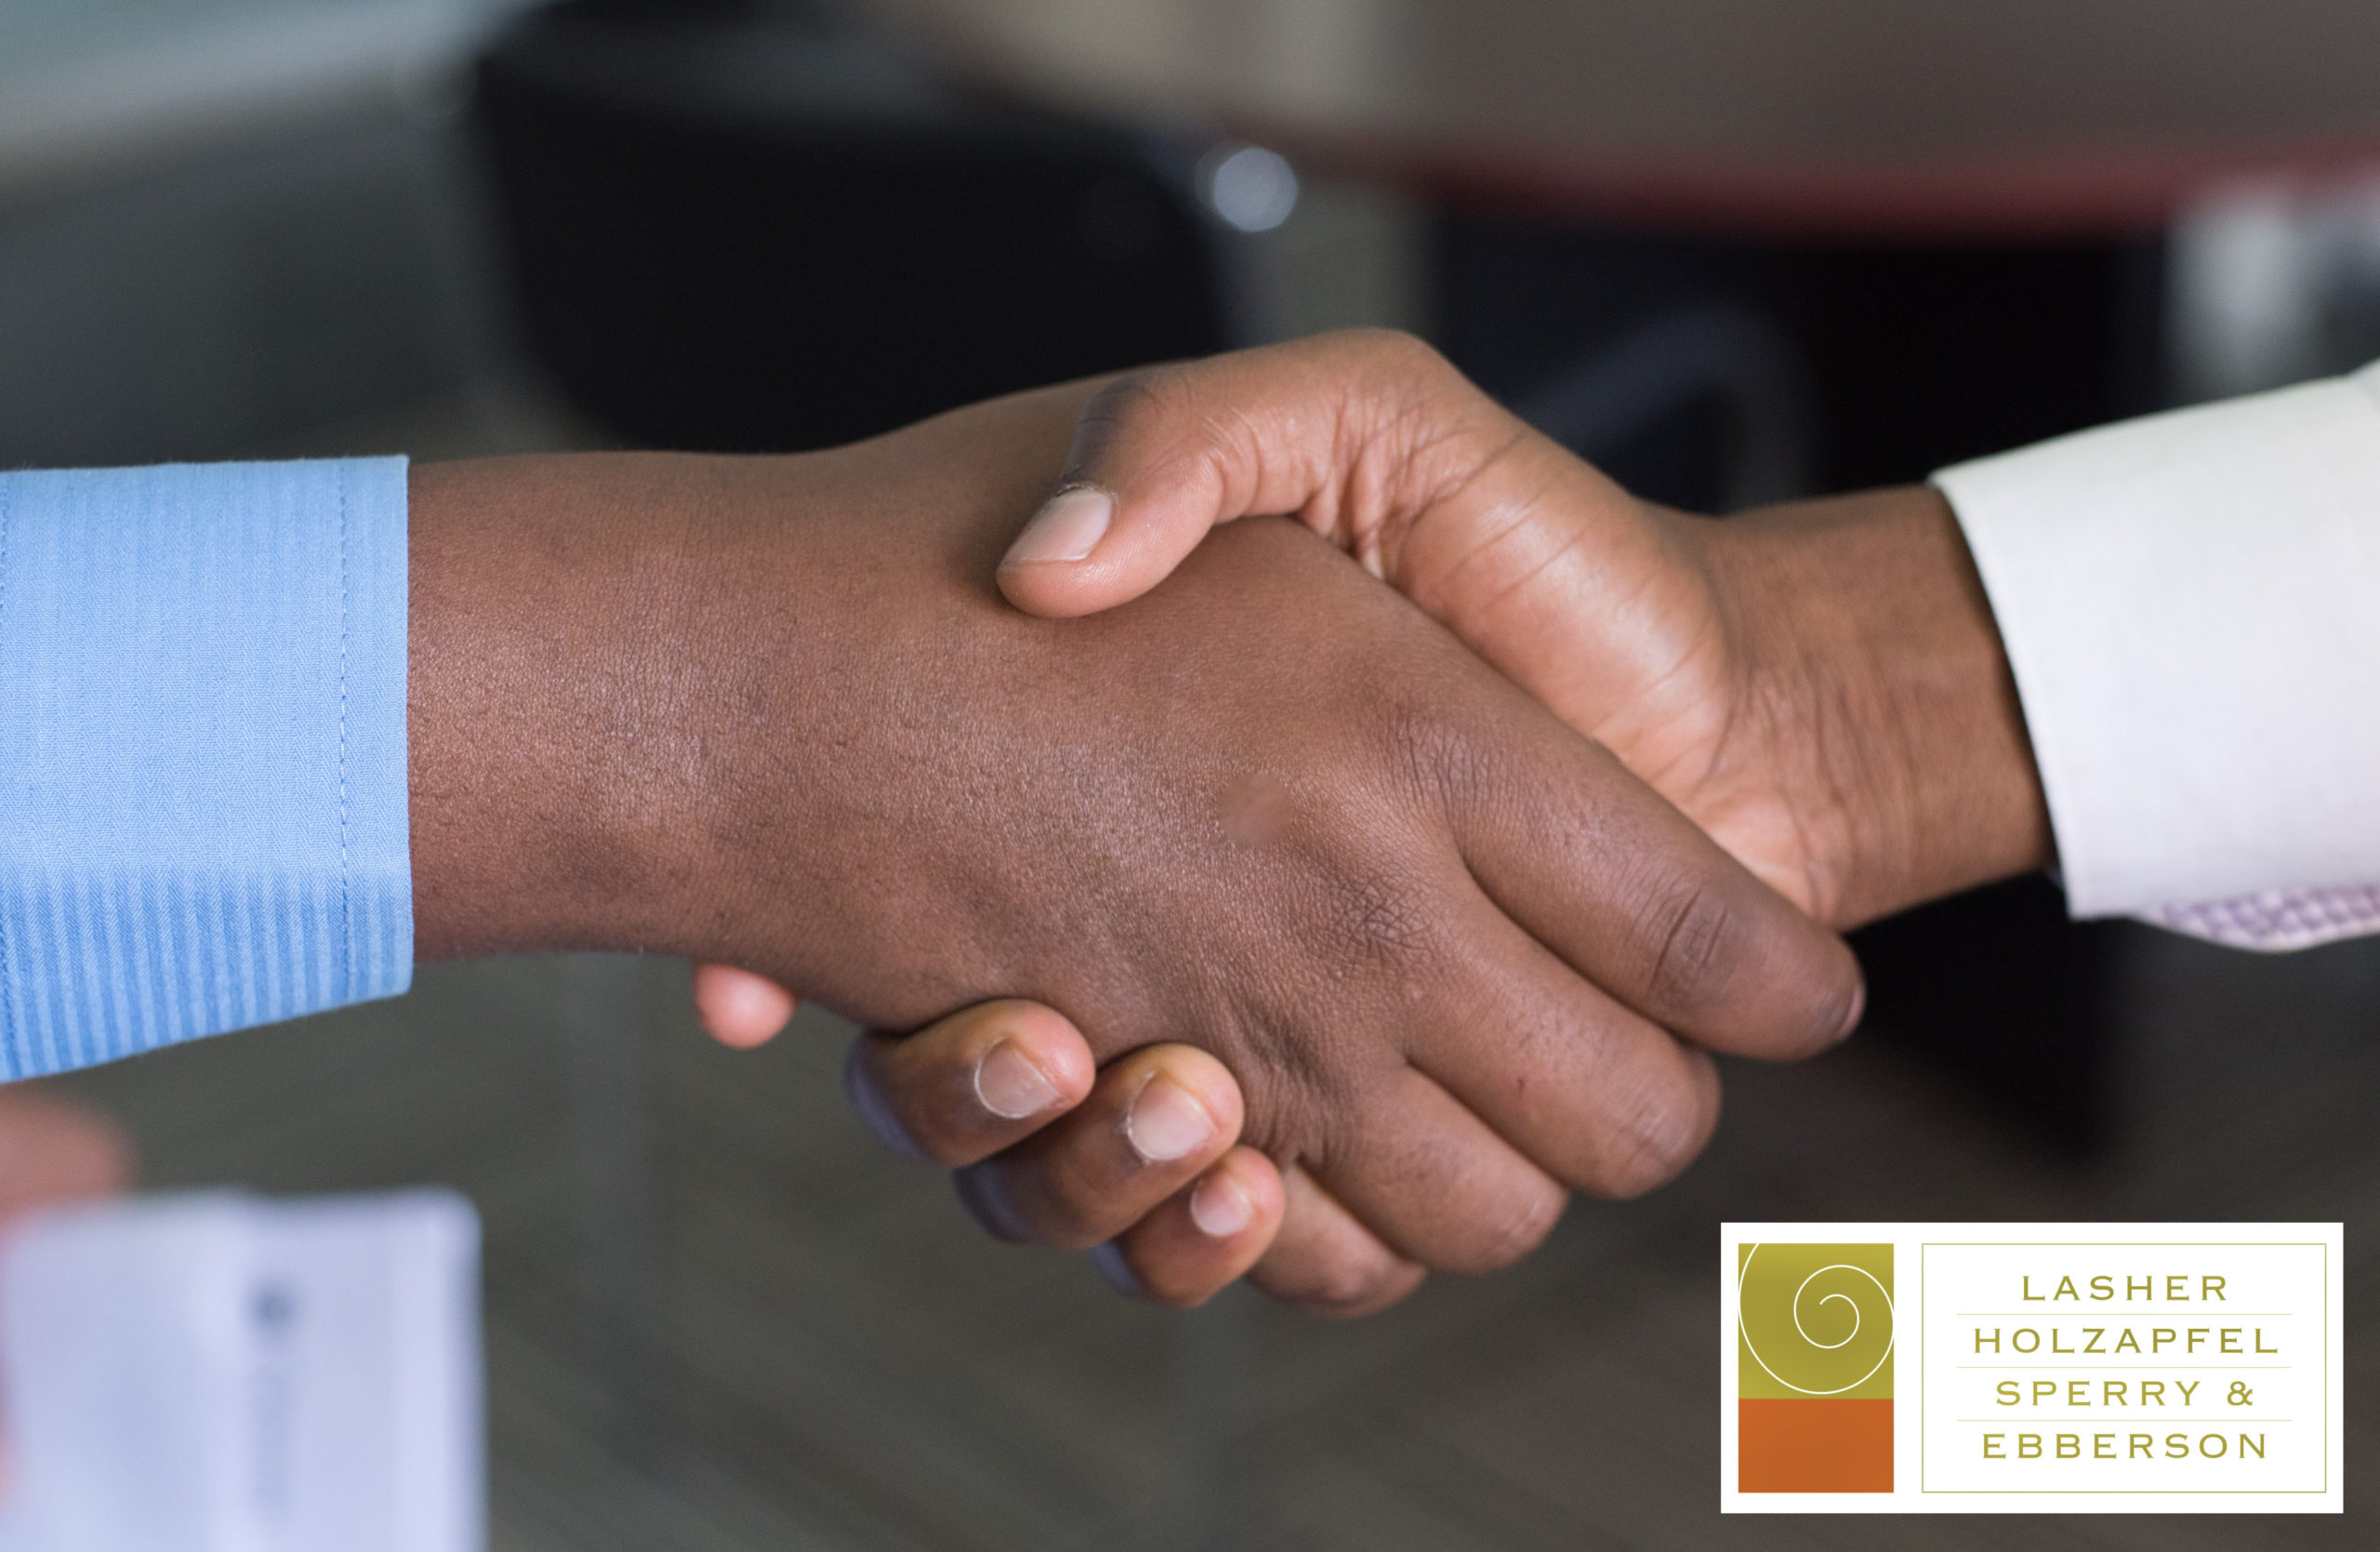 The Accidental Partnership: What to Know if You Have Unwittingly Formed a Business